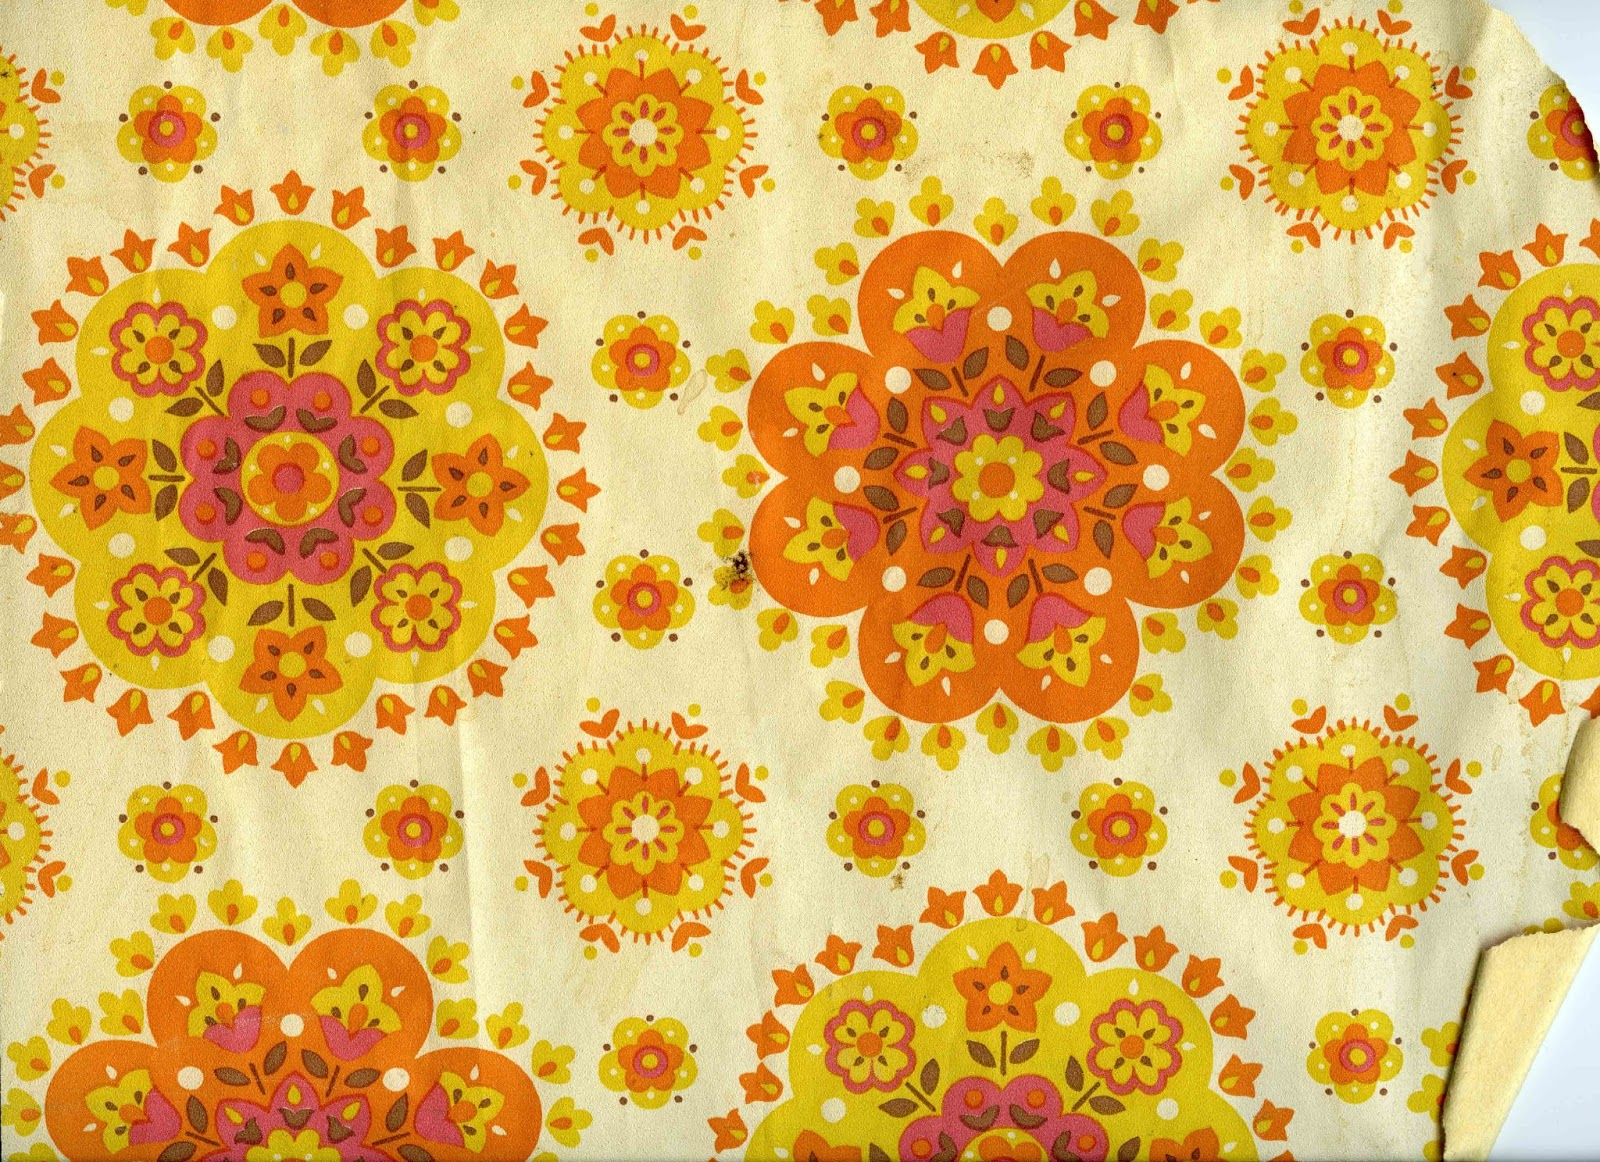 wallpaper 60s 70s yellow orange floral circular pattern design on wall 1600x1162